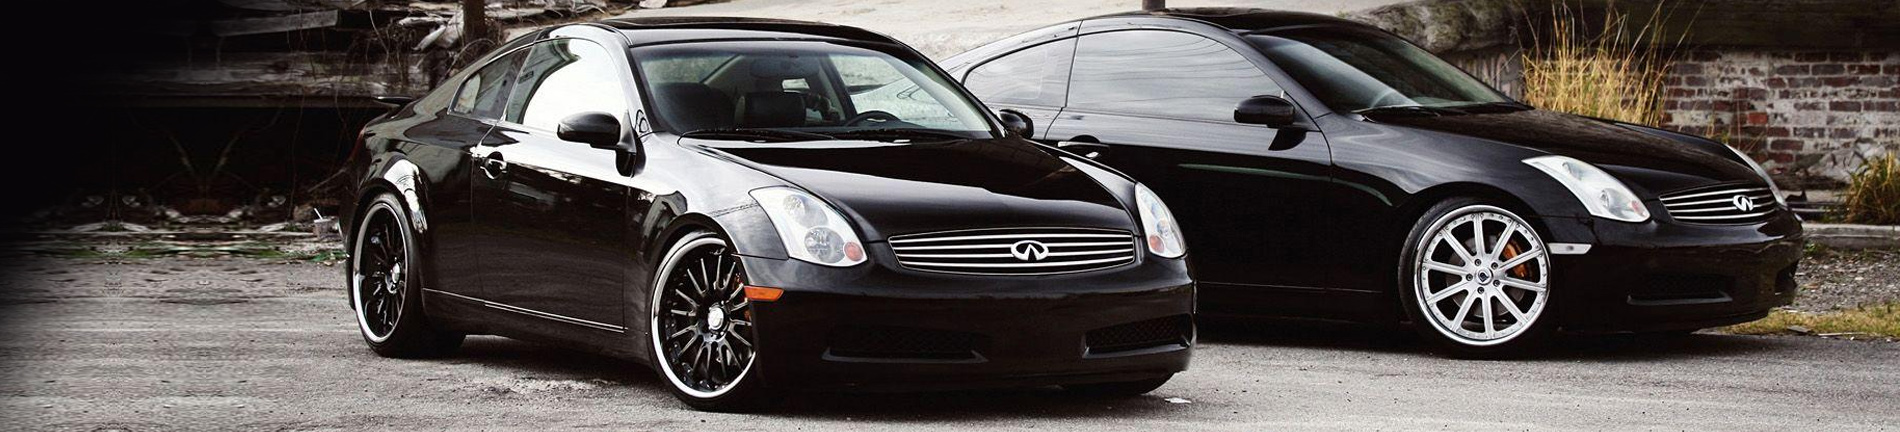 Infiniti Auto parts and performance parts suppliers Crown Auto Parts